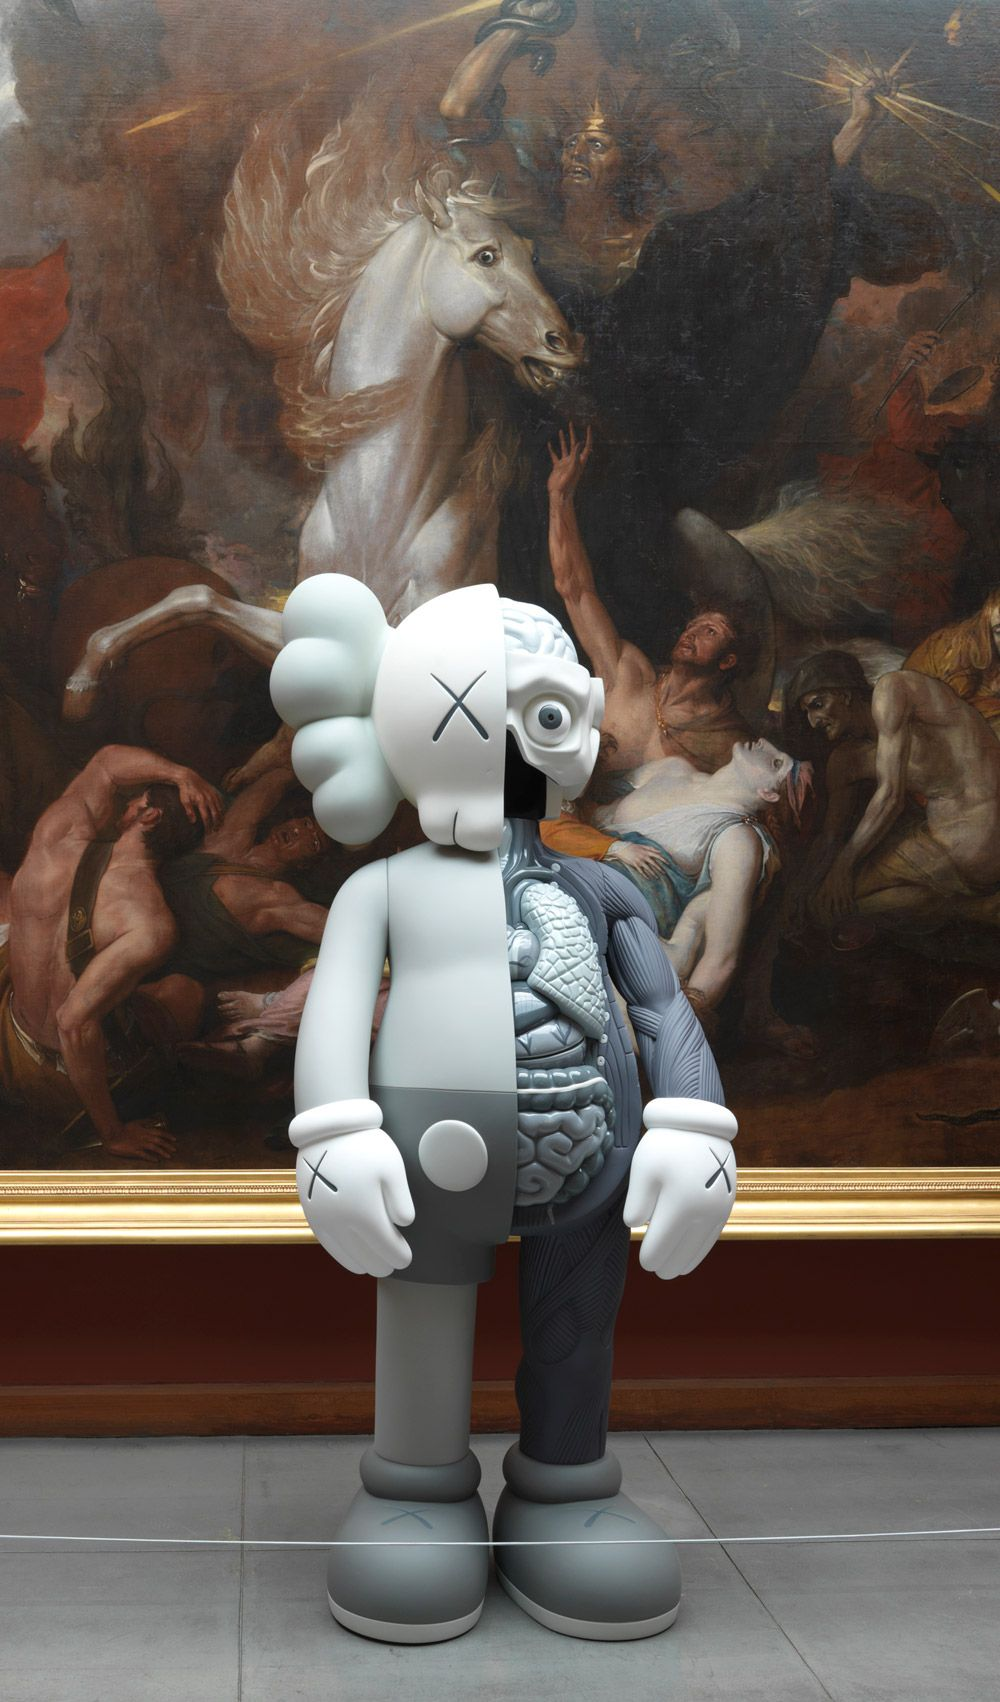 Pop-Art Meets 19th-century Fine Art In KAWS' Latest Solo Exhibition At PAFA / http://www.yatzer.com/kaws-pafa